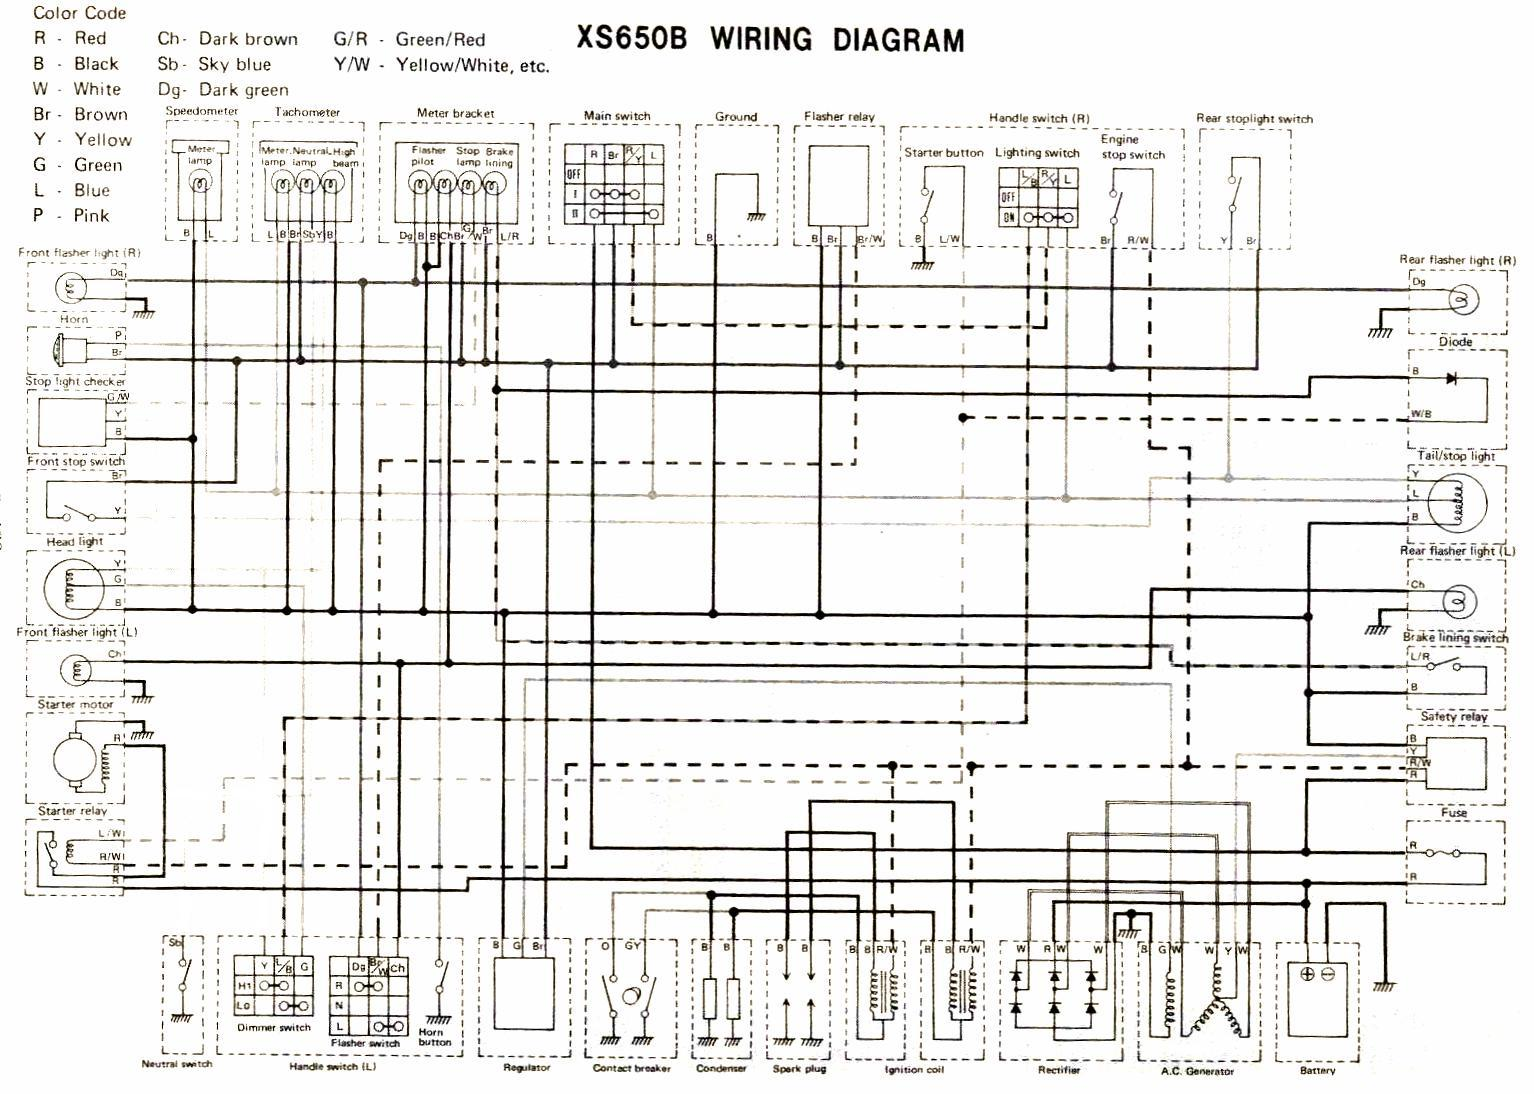 75XS650B wiring diagrams 2007 yamaha r6 wiring diagram at readyjetset.co